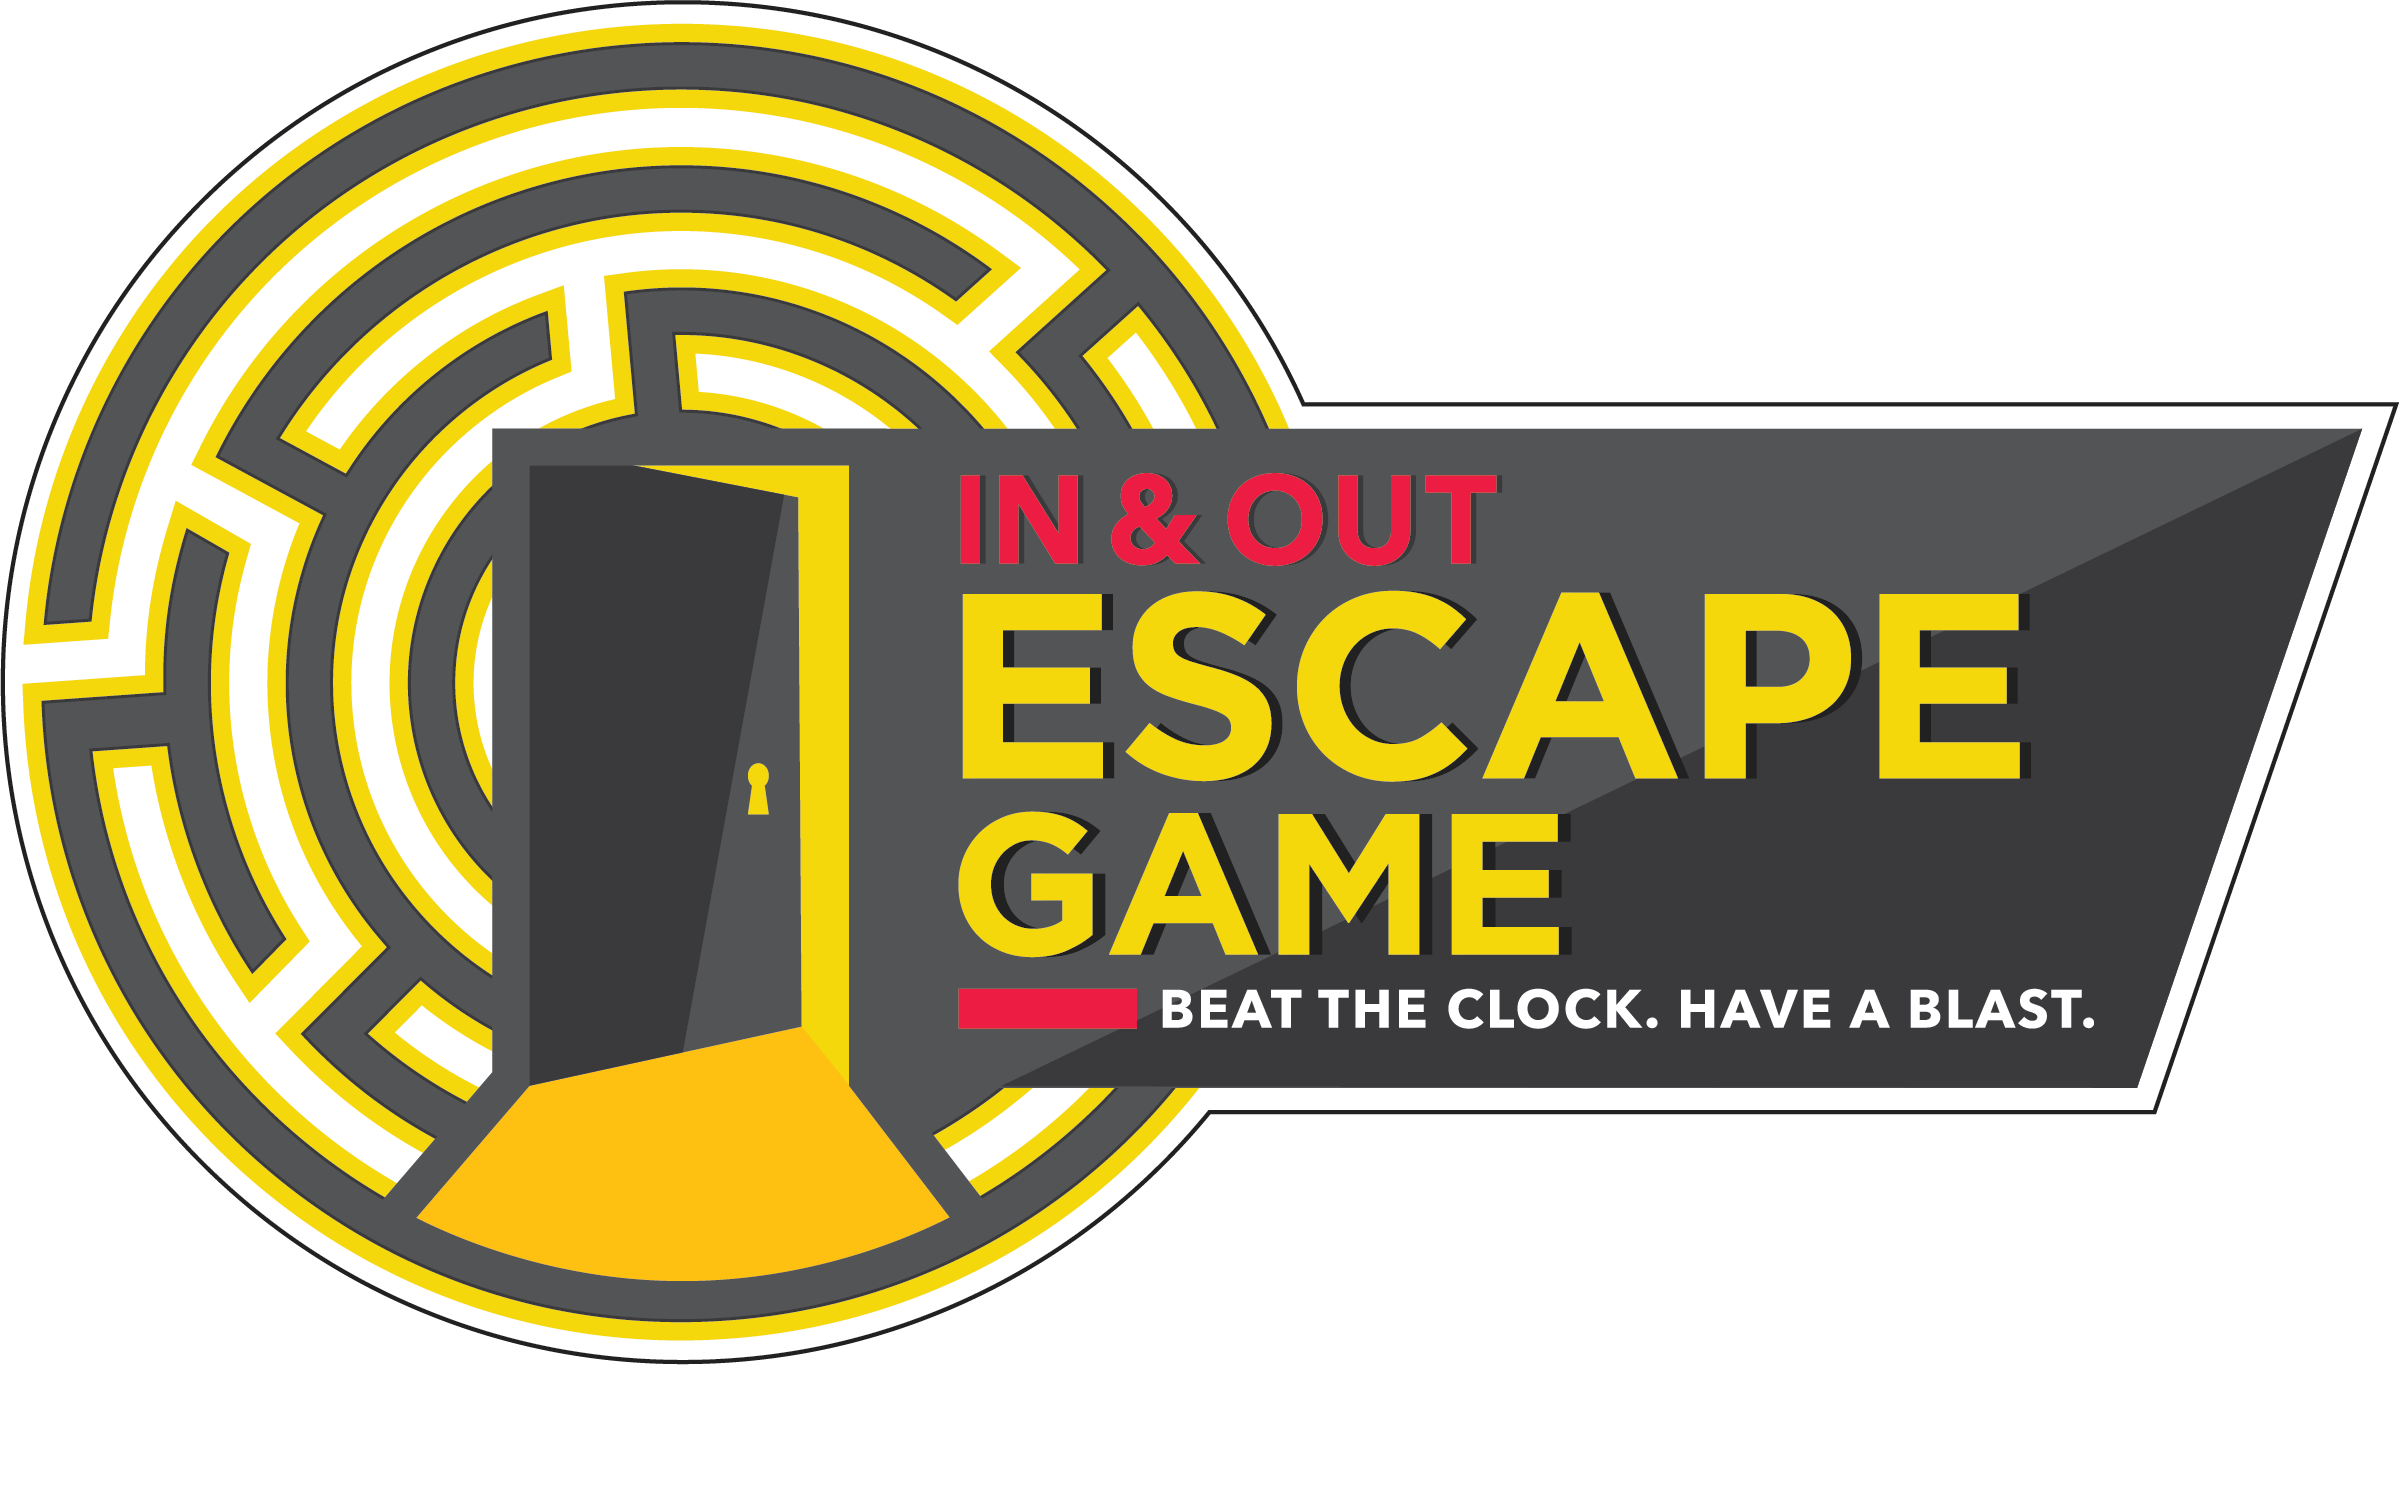 In & Out Emporium - Family Escape Game